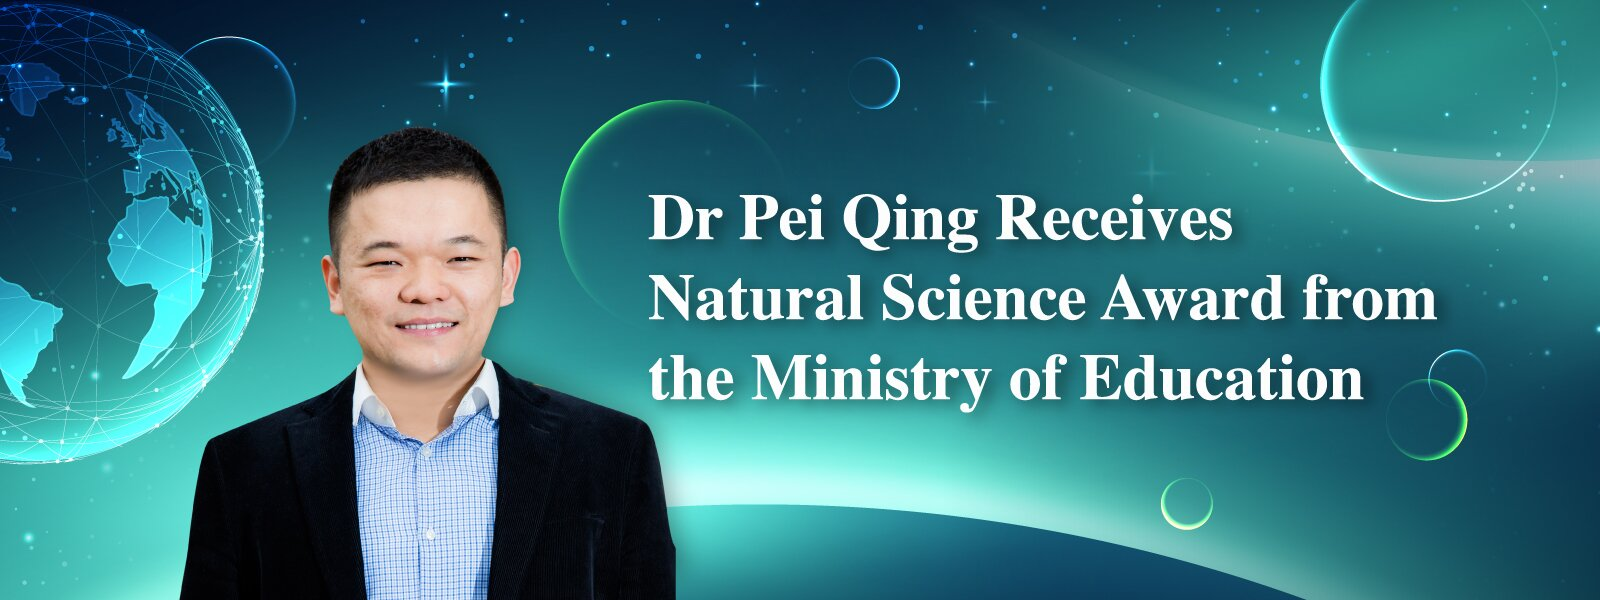 Dr Pei Qing Receives Natural Science Award from the Ministry of Education